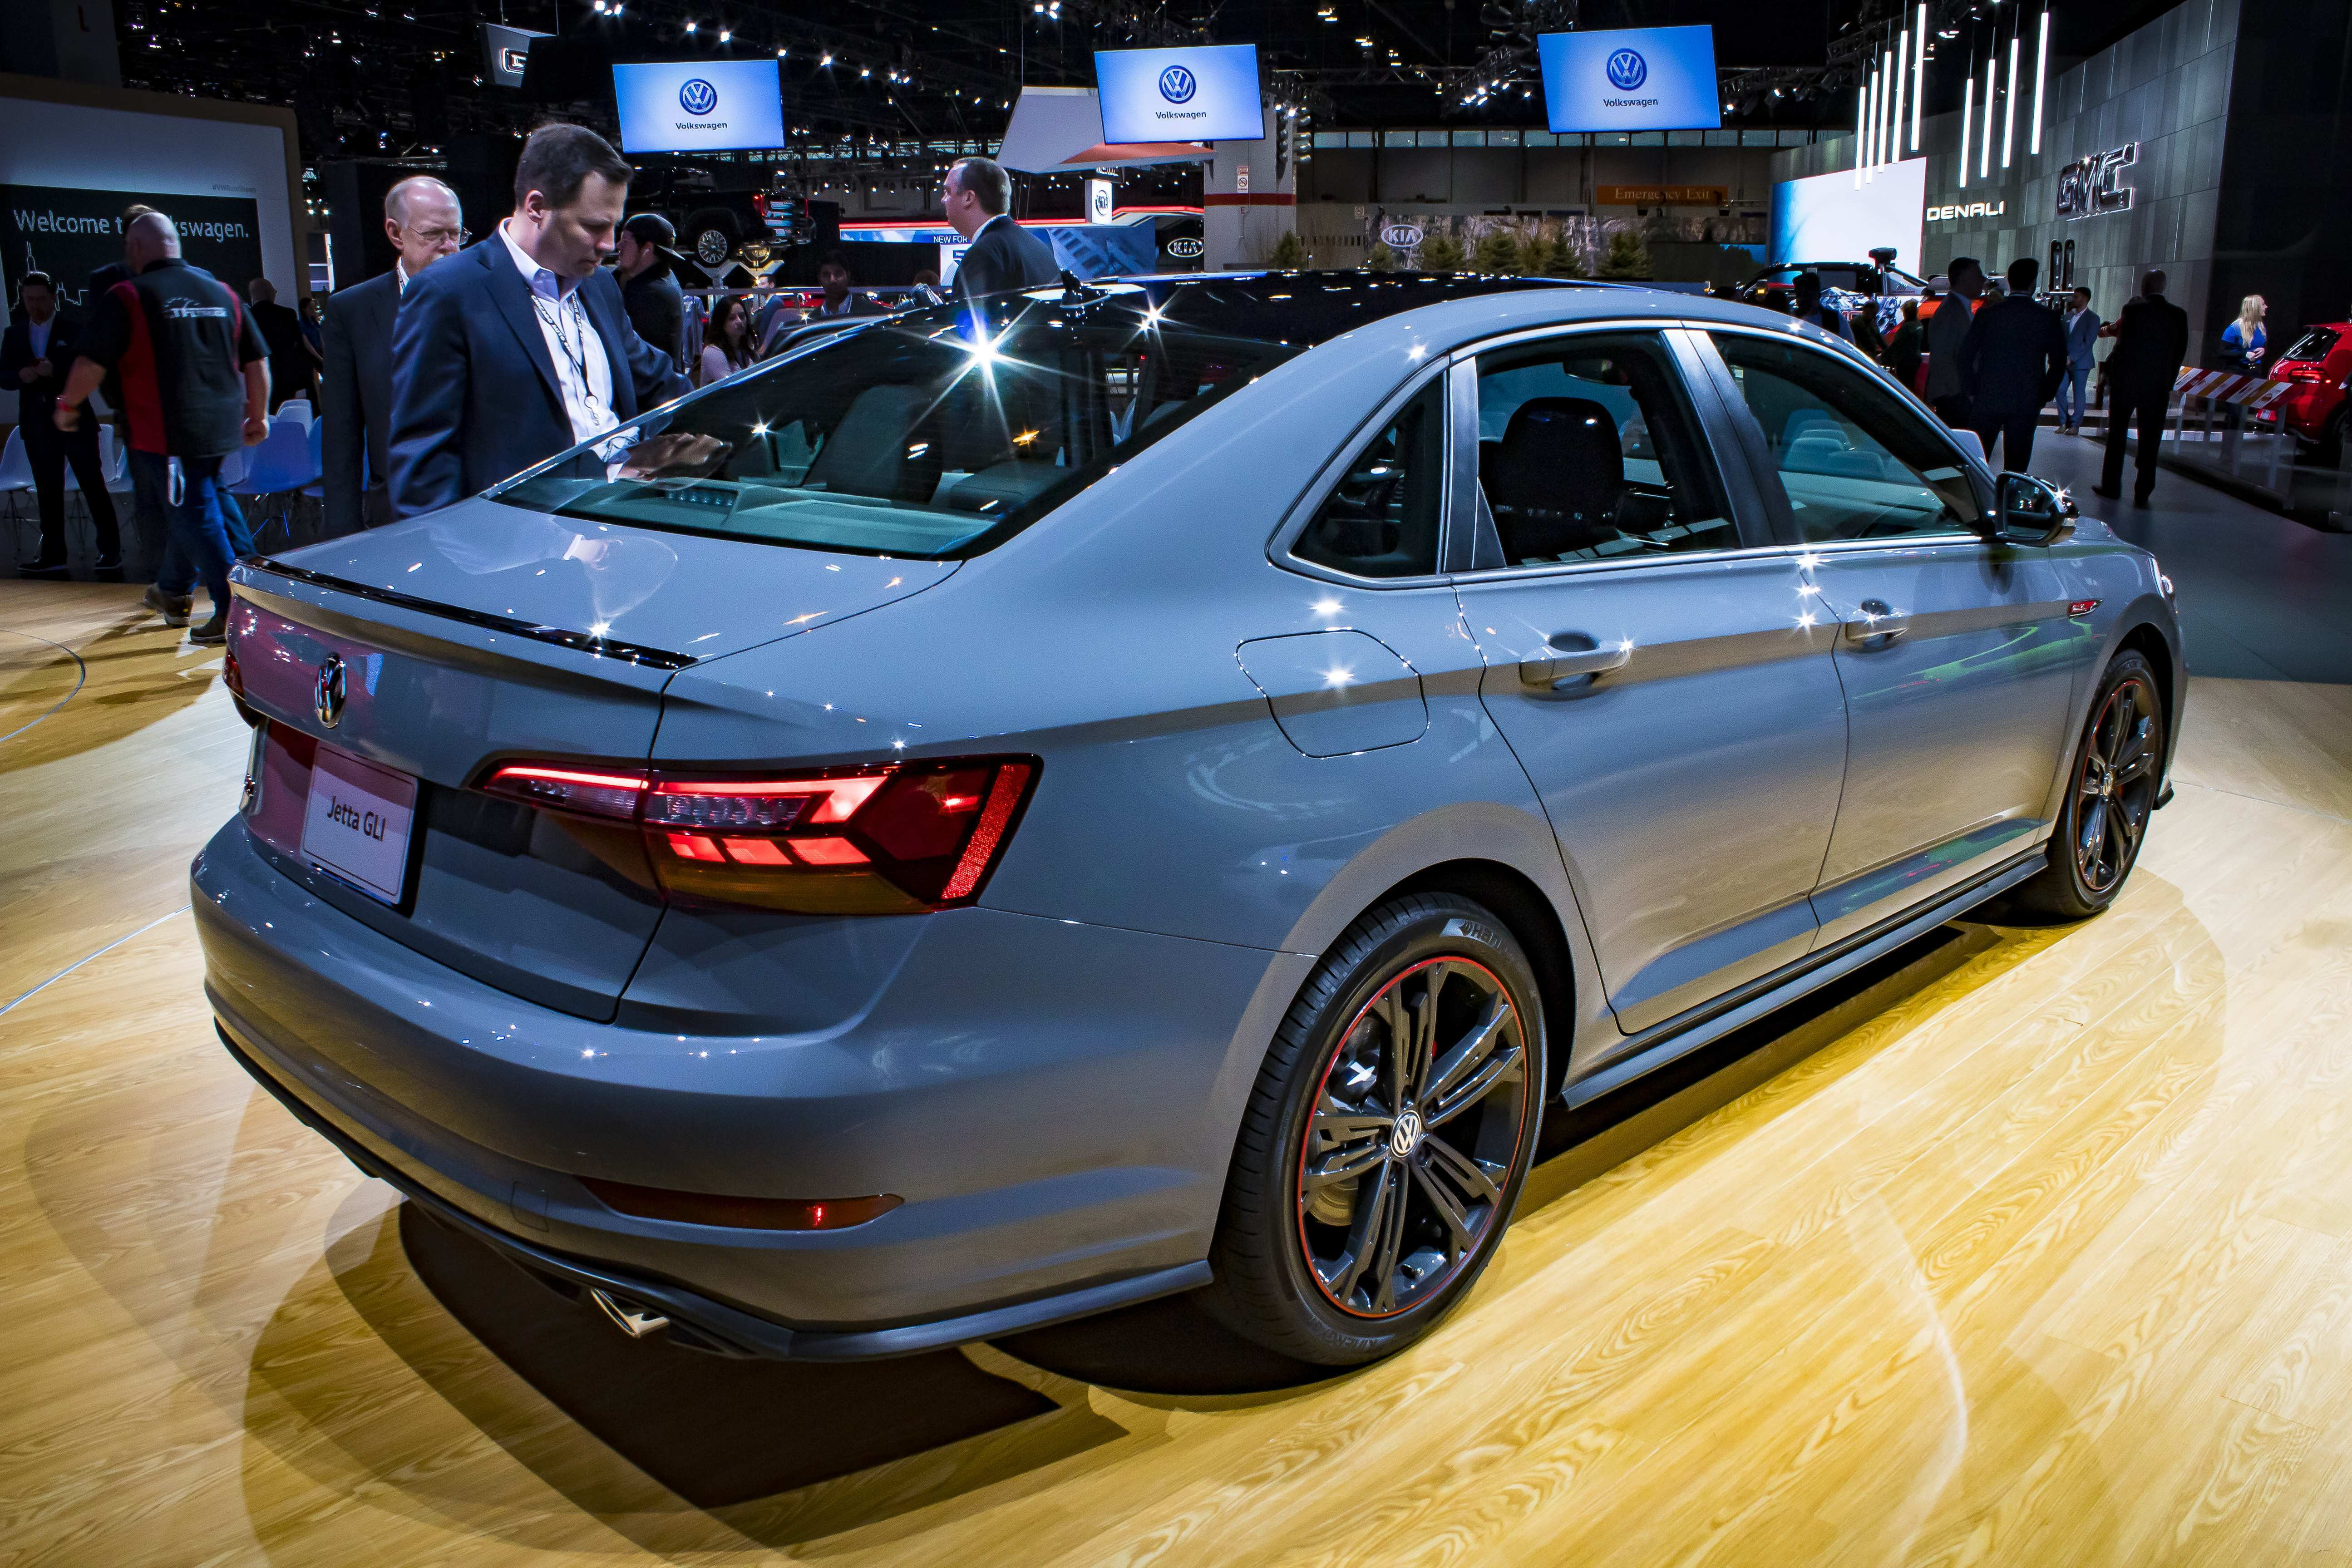 44 All New New Volkswagen Jetta 2020 Performance and New Engine with New Volkswagen Jetta 2020